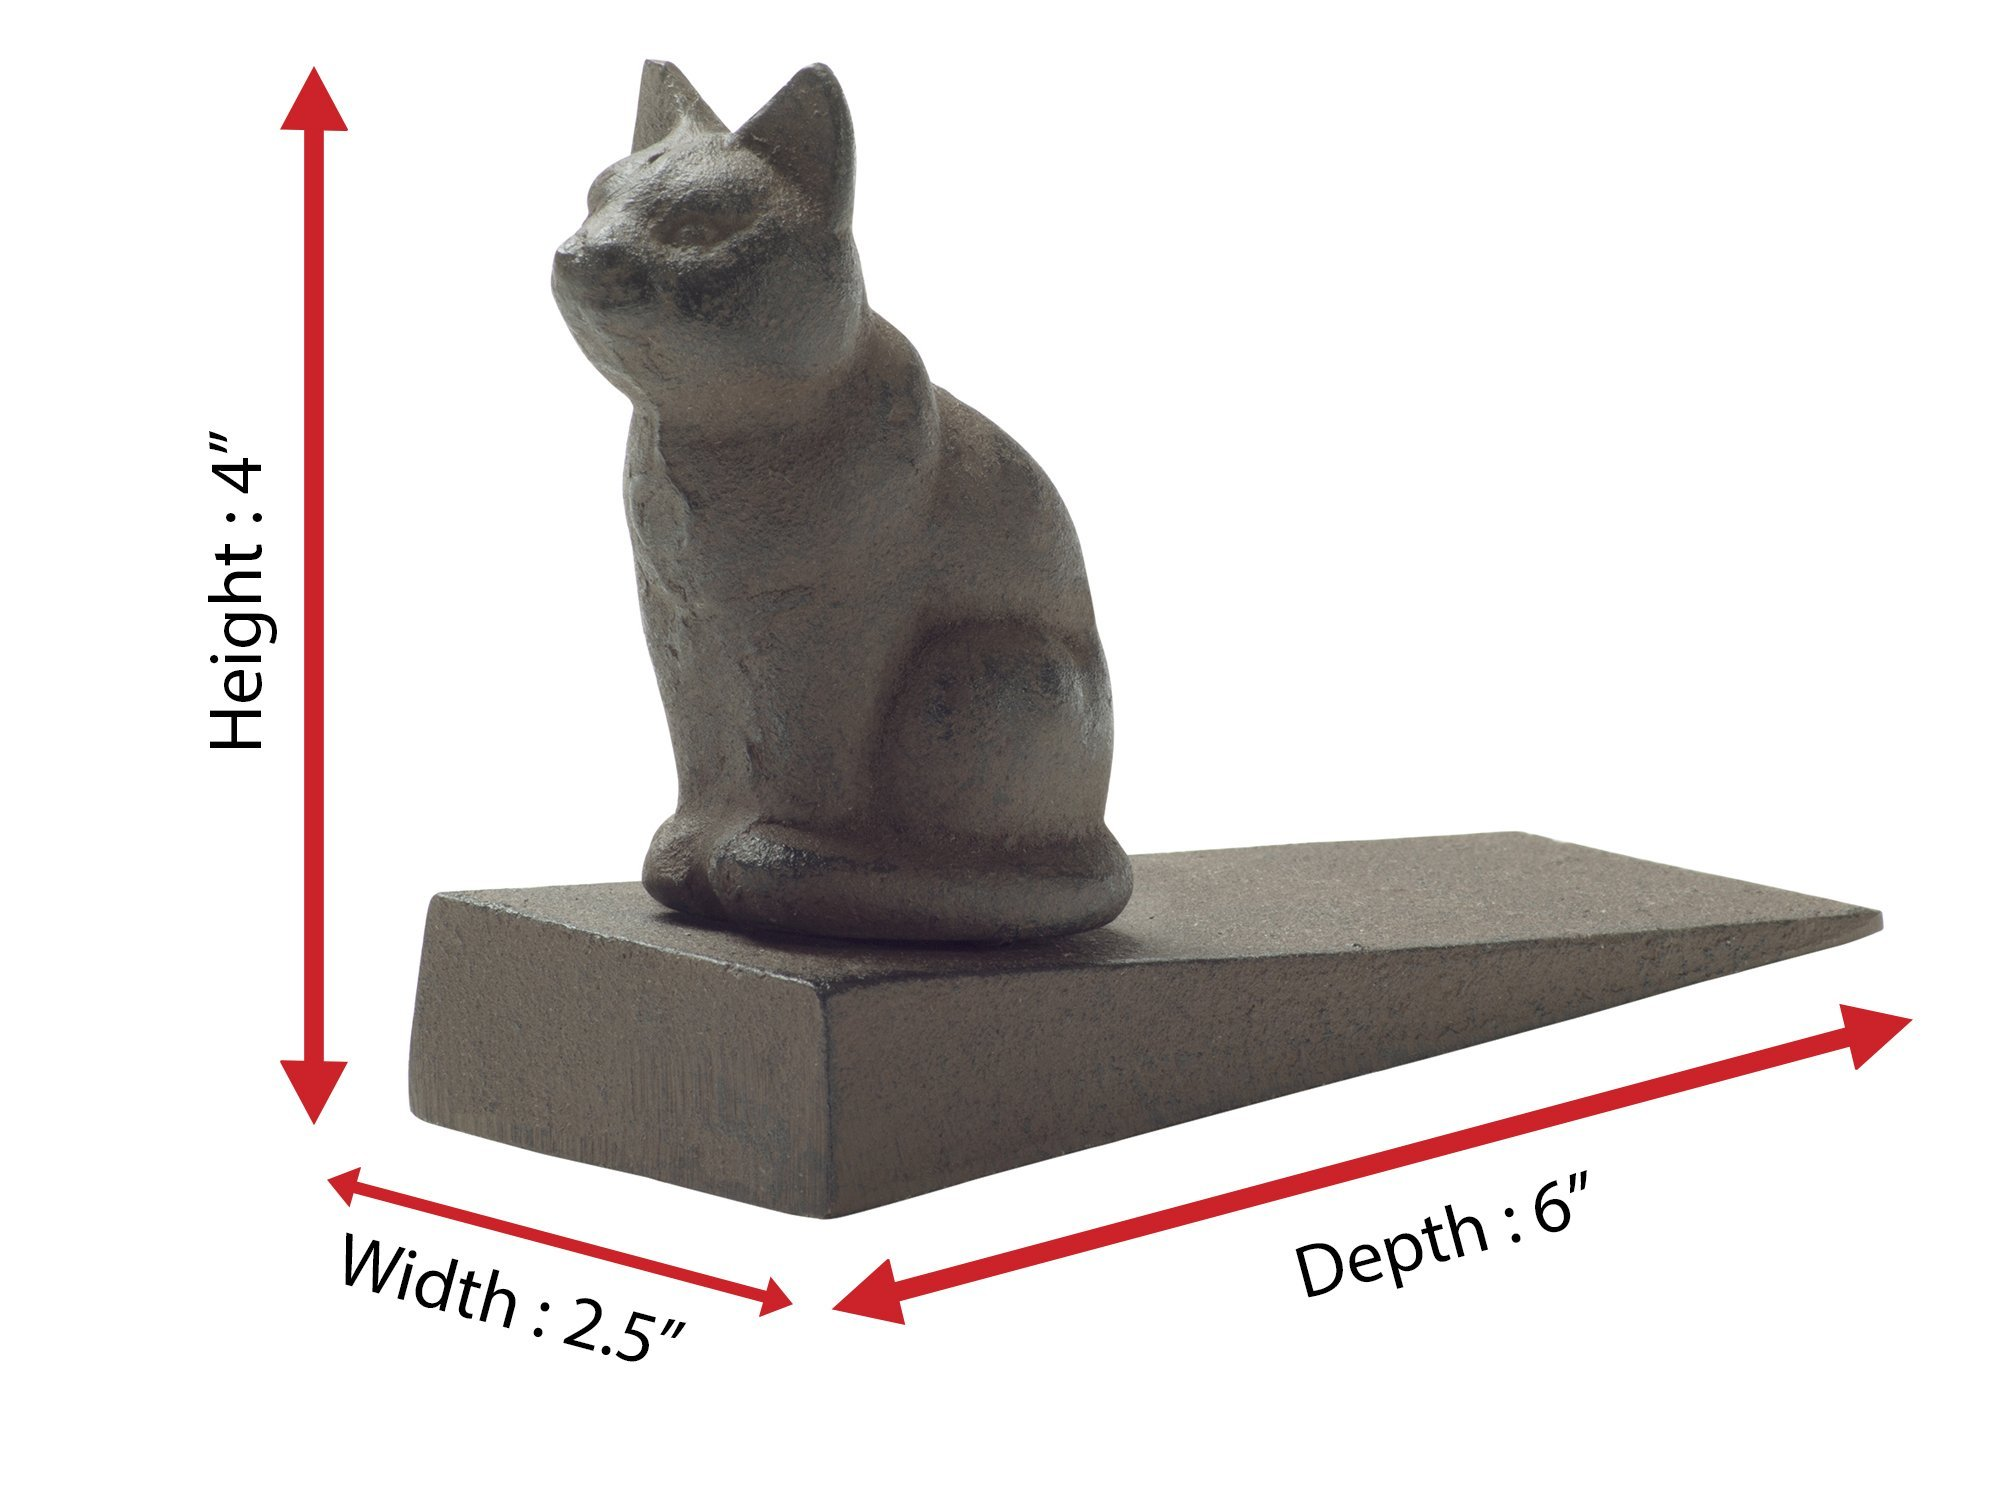 Comfify Vintage Cast Iron Cat Door Stop Wedge Lovely Decorative Finish, Padded Anti-Scratch Felt Bottom Protects Floors   in Rust Brown (Cat Door Stop CA-1507-12) by Comfify (Image #4)